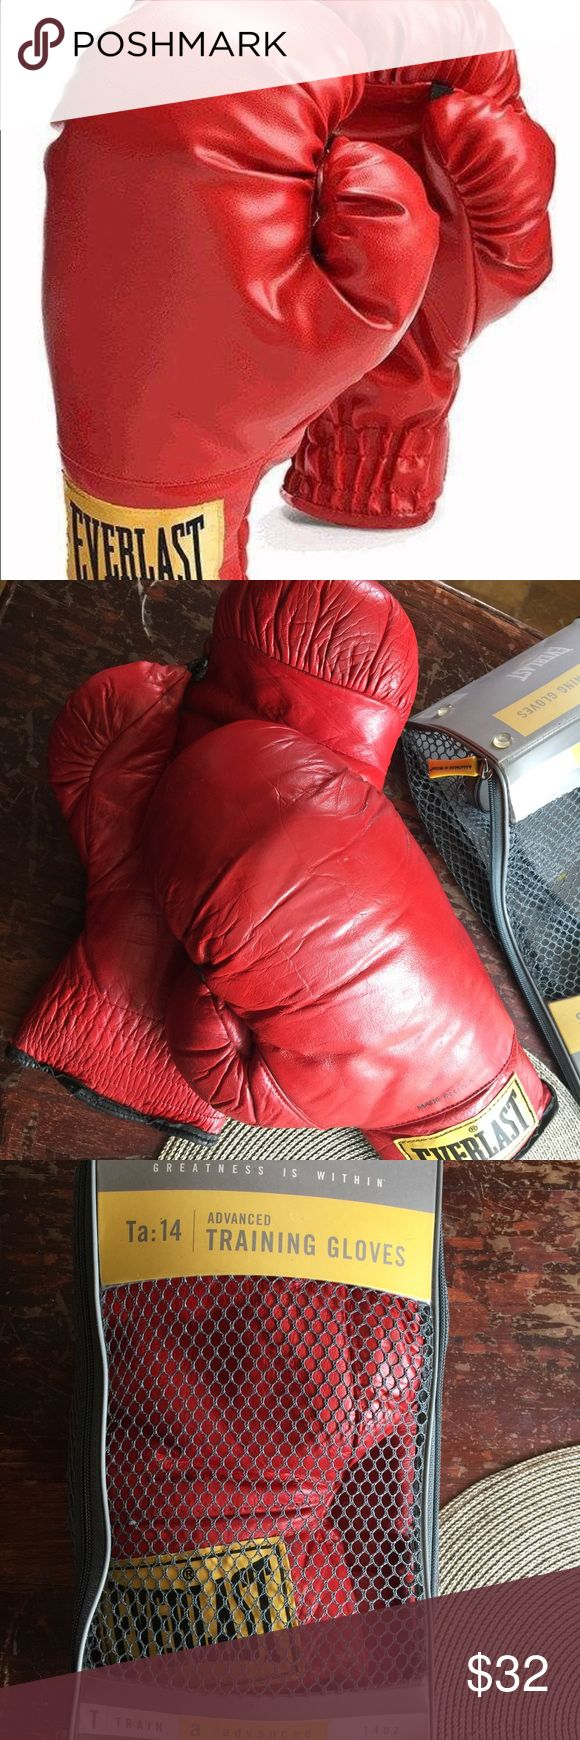 Everlast boxing gloves Used Everlasting Advanced Pro Style Training Gloves TA:14 #2754. Other